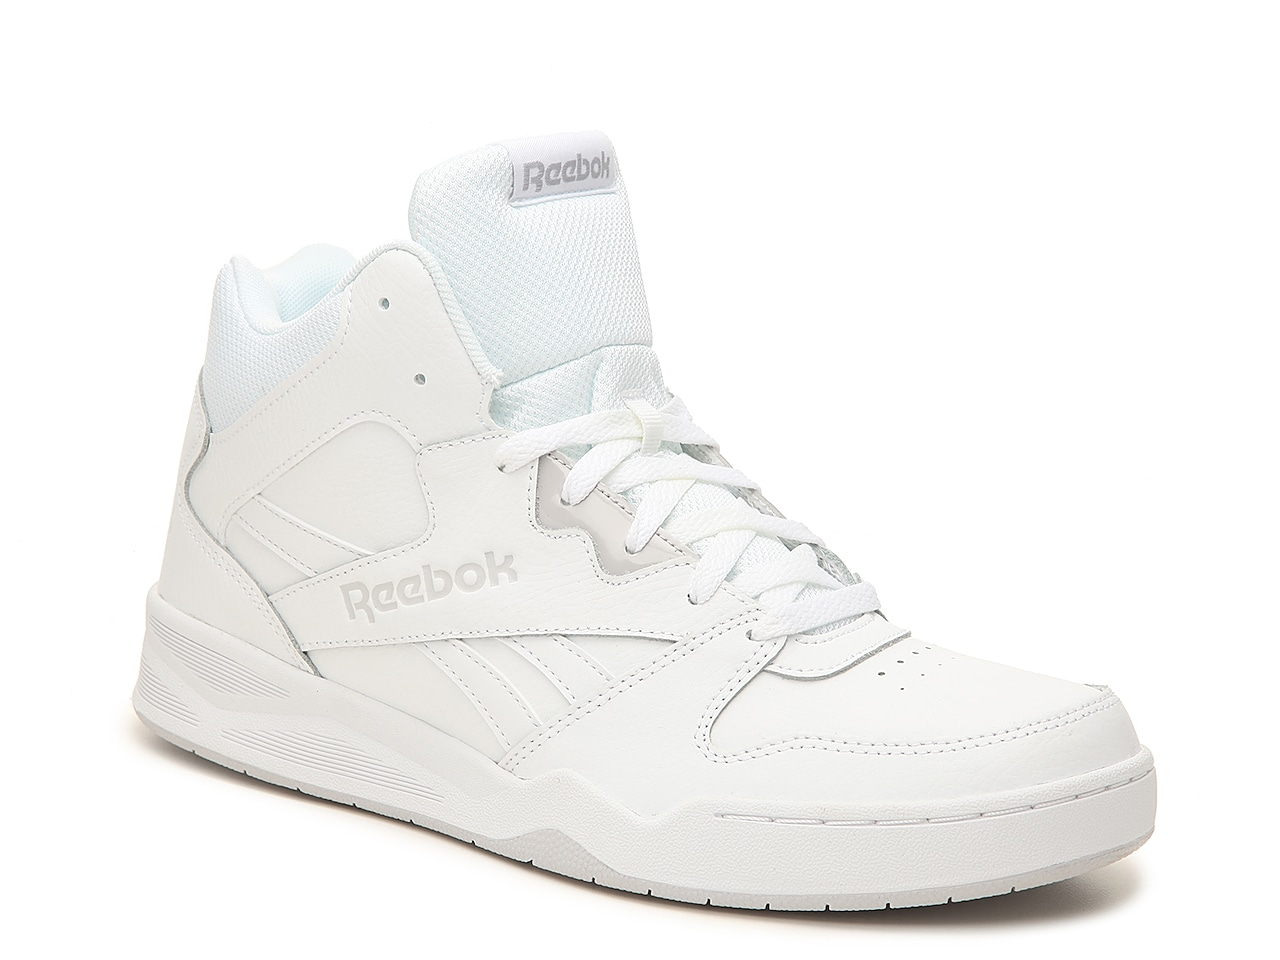 Royal BB4500 HI2 High-Top Sneaker - Men's